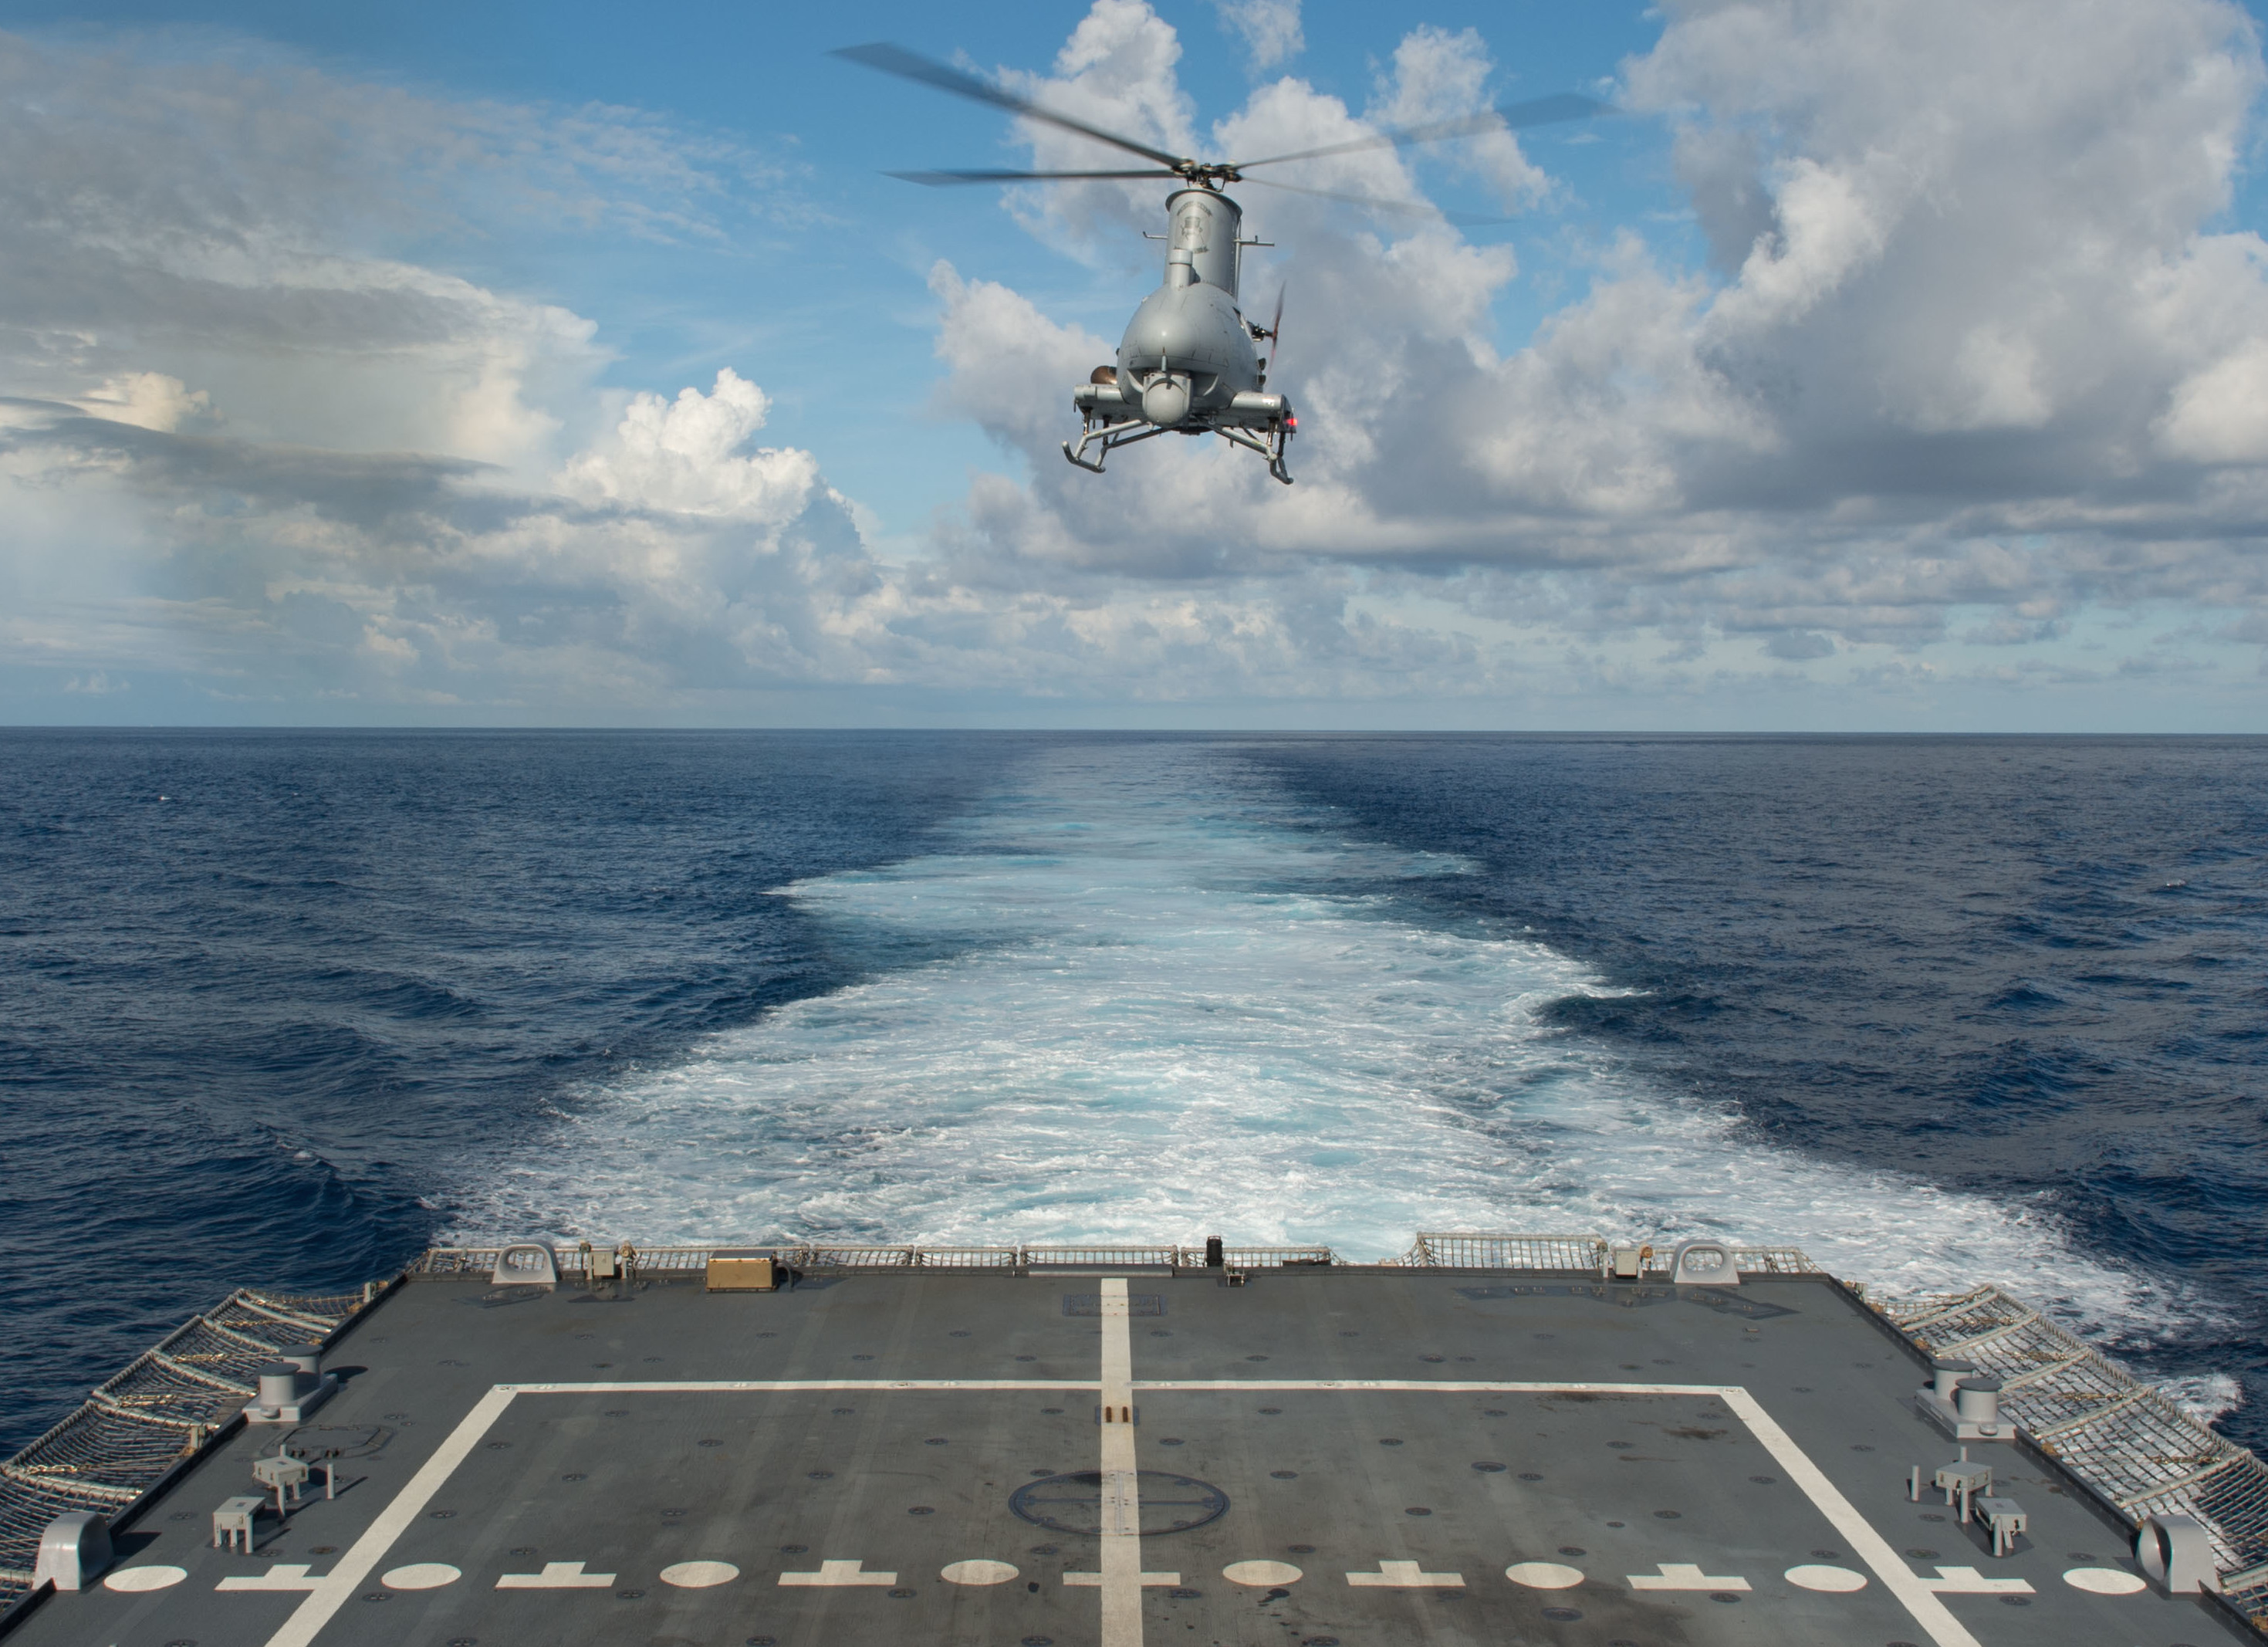 An MQ-8B Fire Scout unmanned aircraft system from the Magicians of Helicopter Maritime Strike Squadron (HSM) 35 lifts off the flight deck of the littoral combat ship USS Fort Worth (LCS-3) on Dec. 17, 2014.